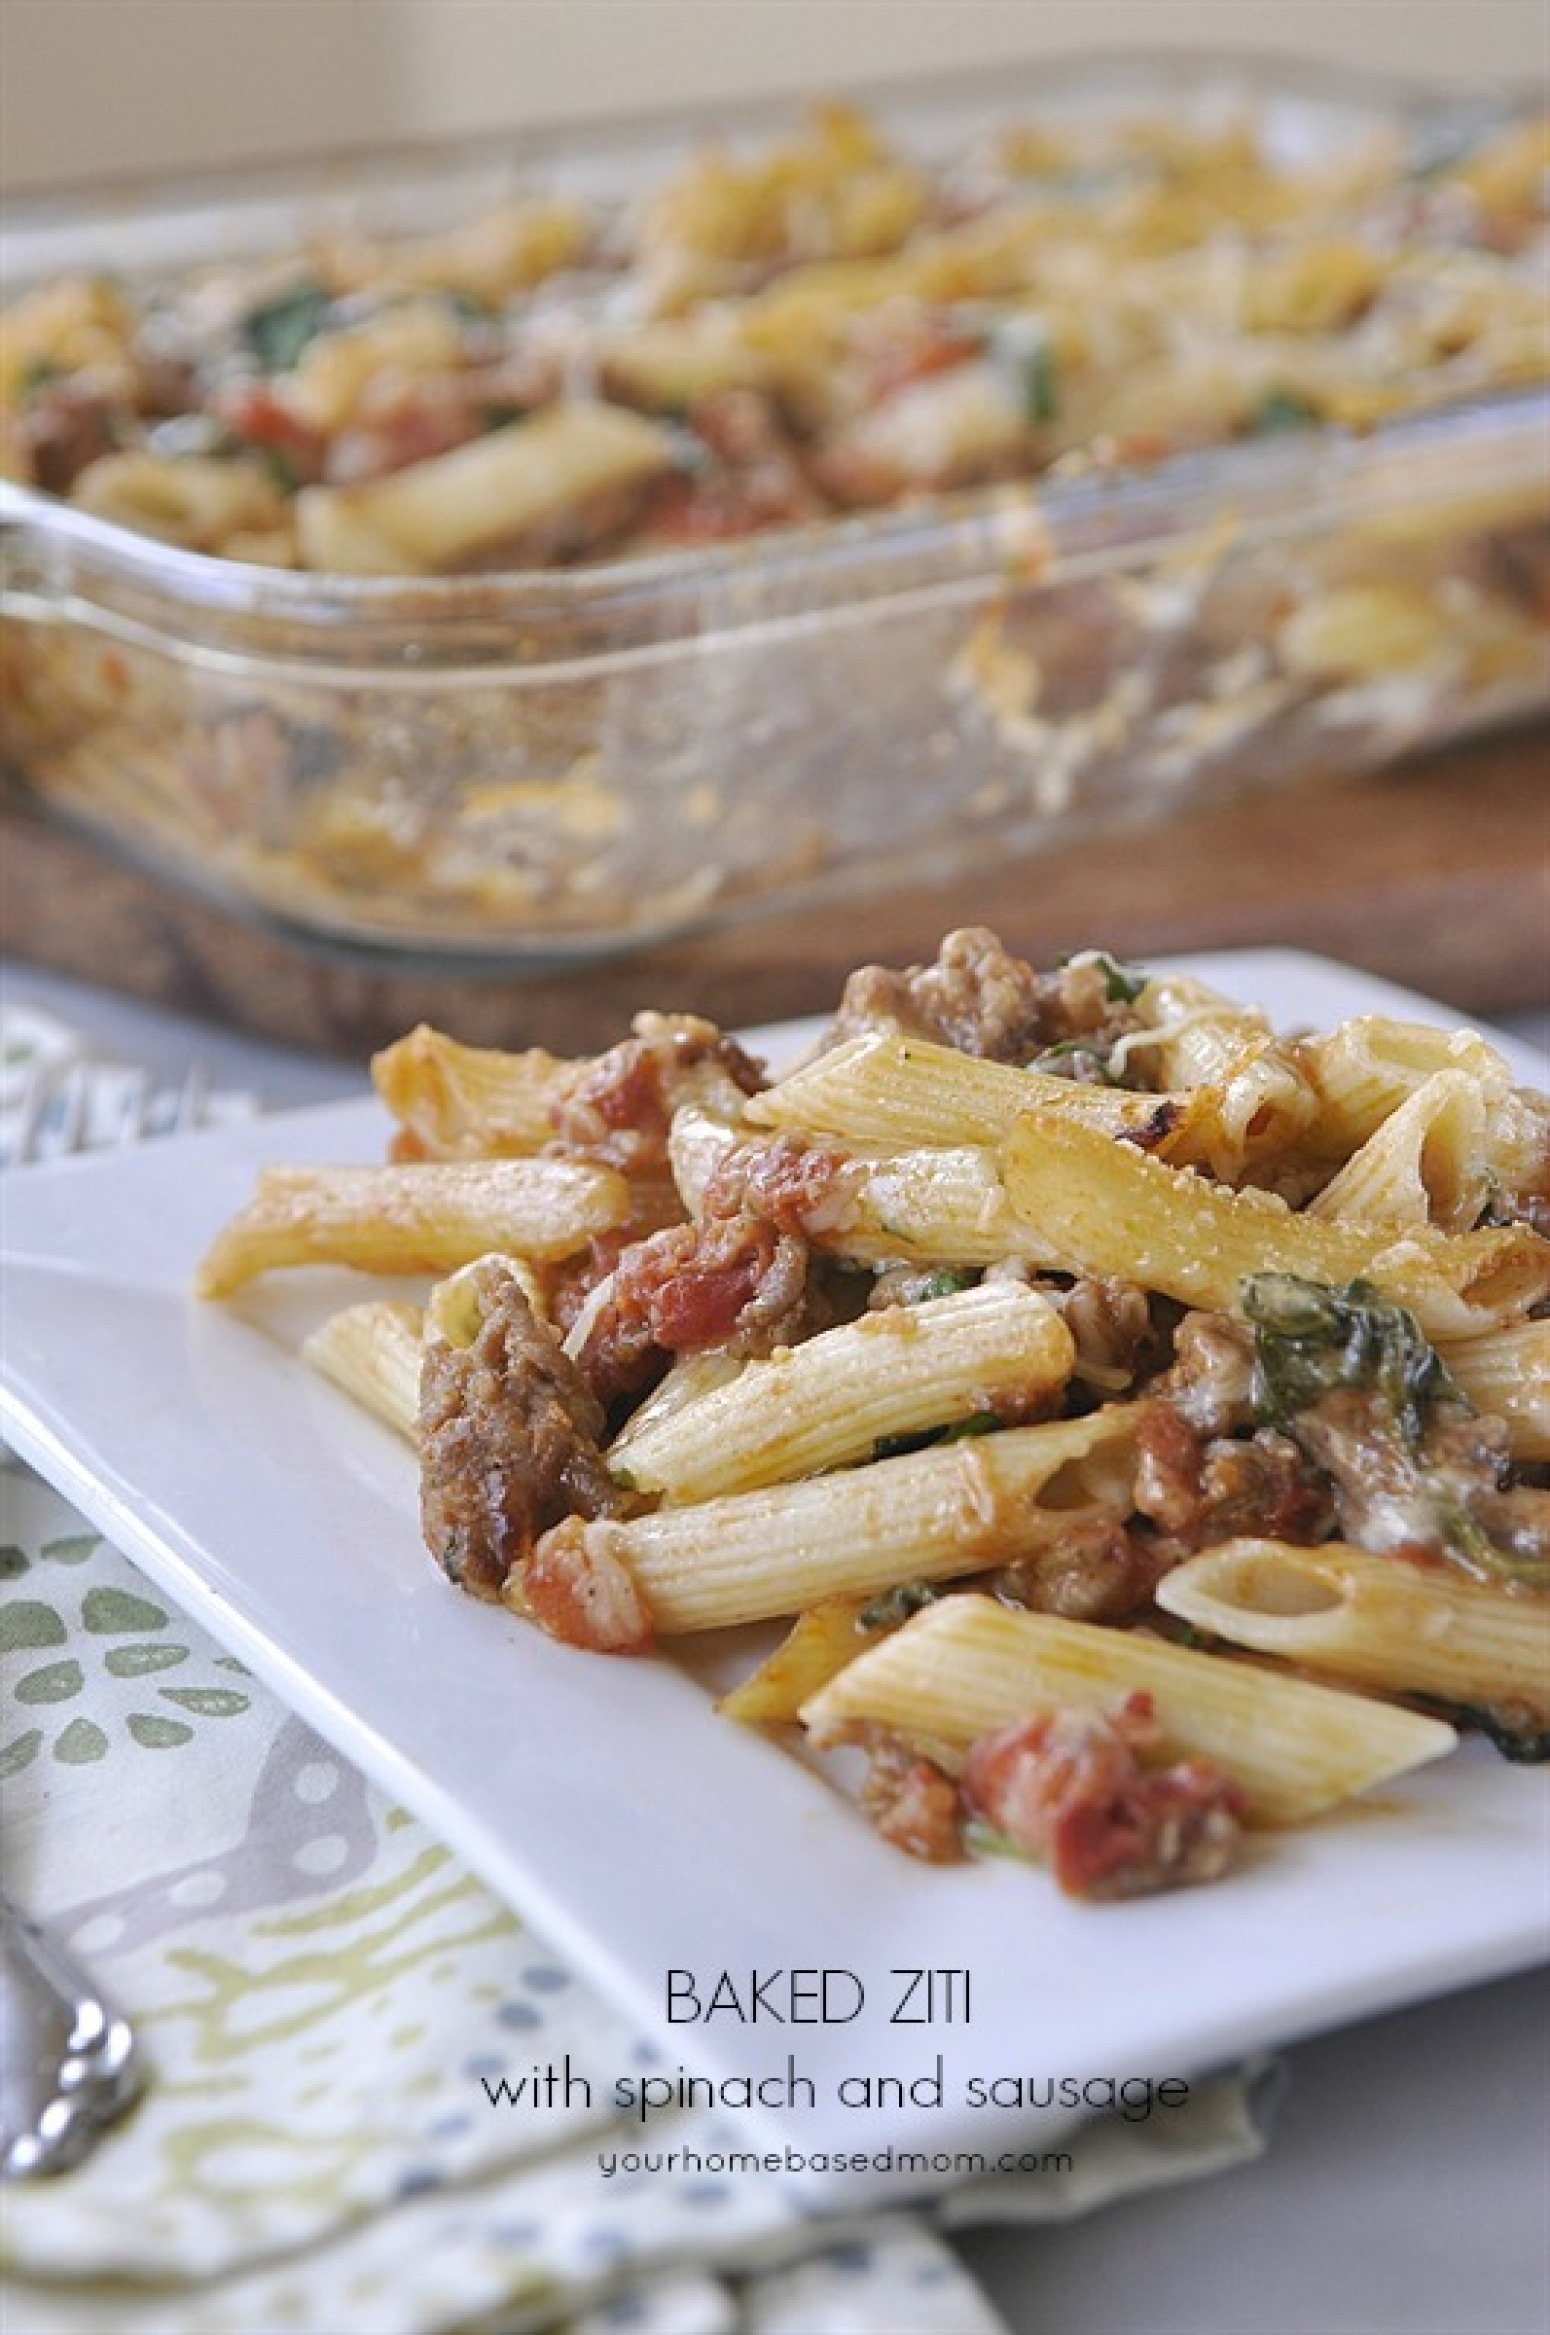 Baked Ziti with Spinach and Sausage Recipe | Just A Pinch Recipes